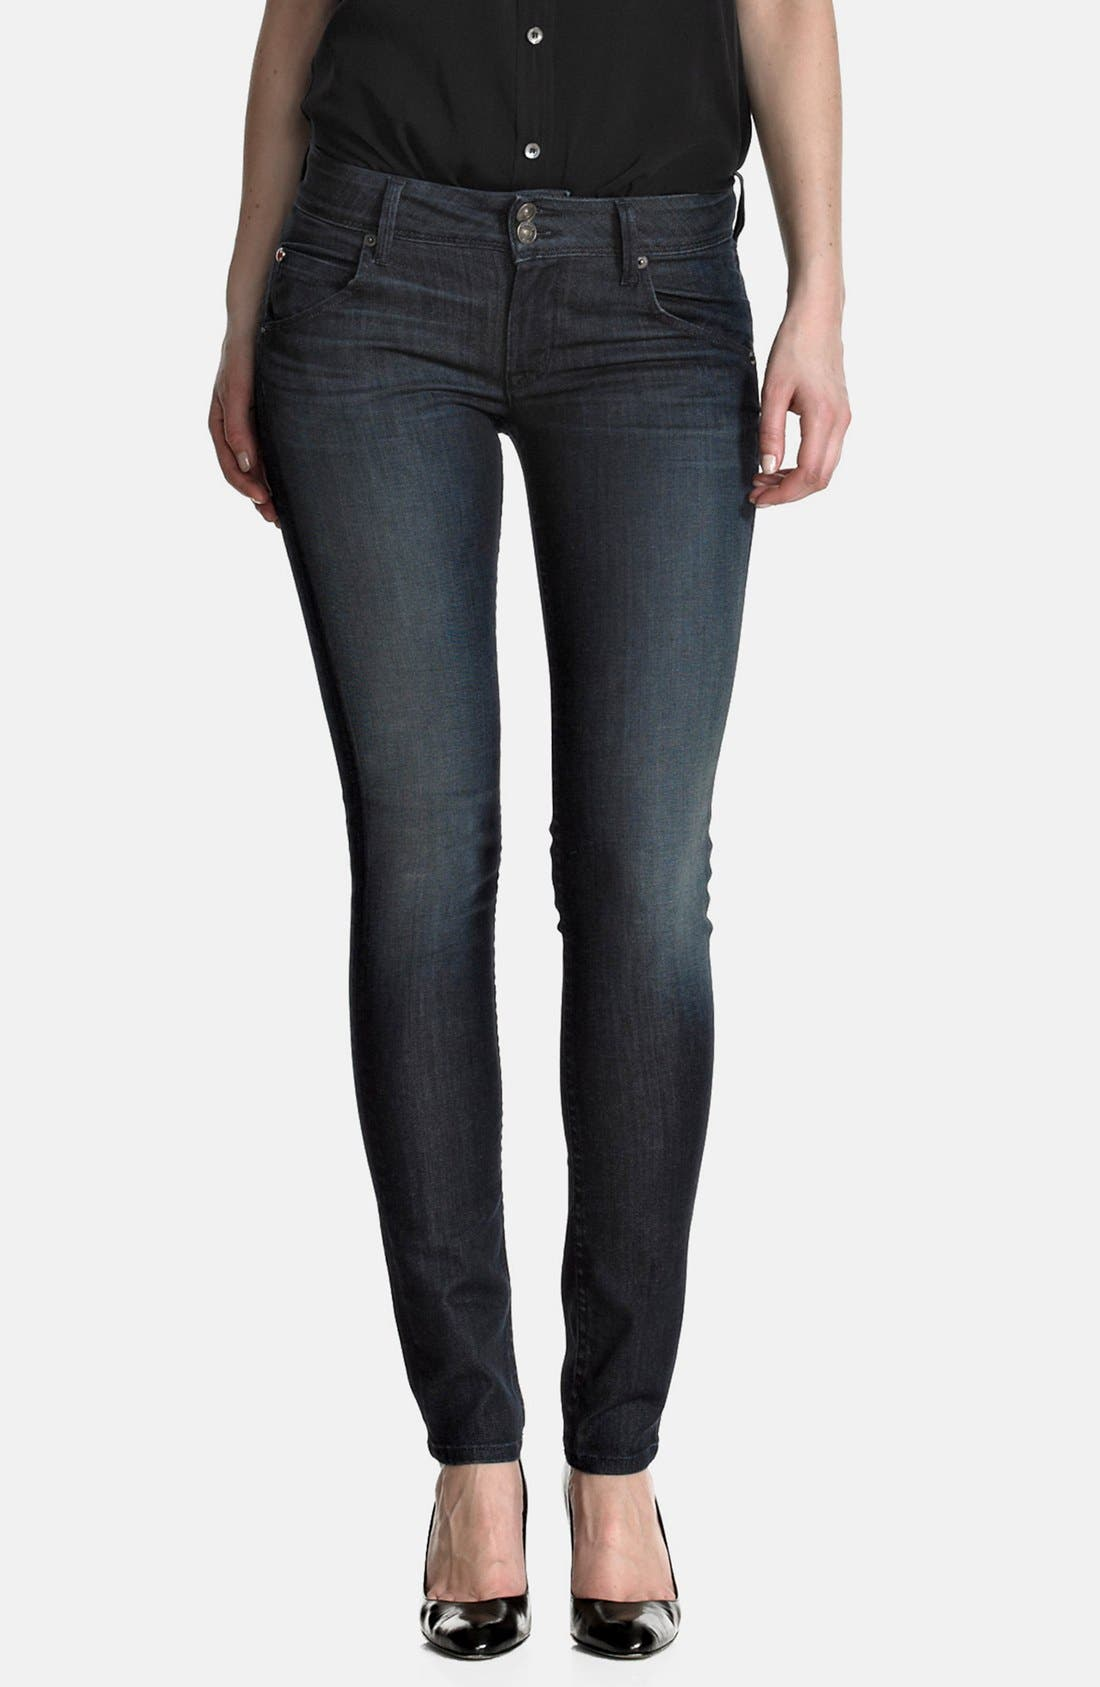 Alternate Image 1 Selected - Hudson Jeans 'Collin' Skinny Jeans (Siouxsie)